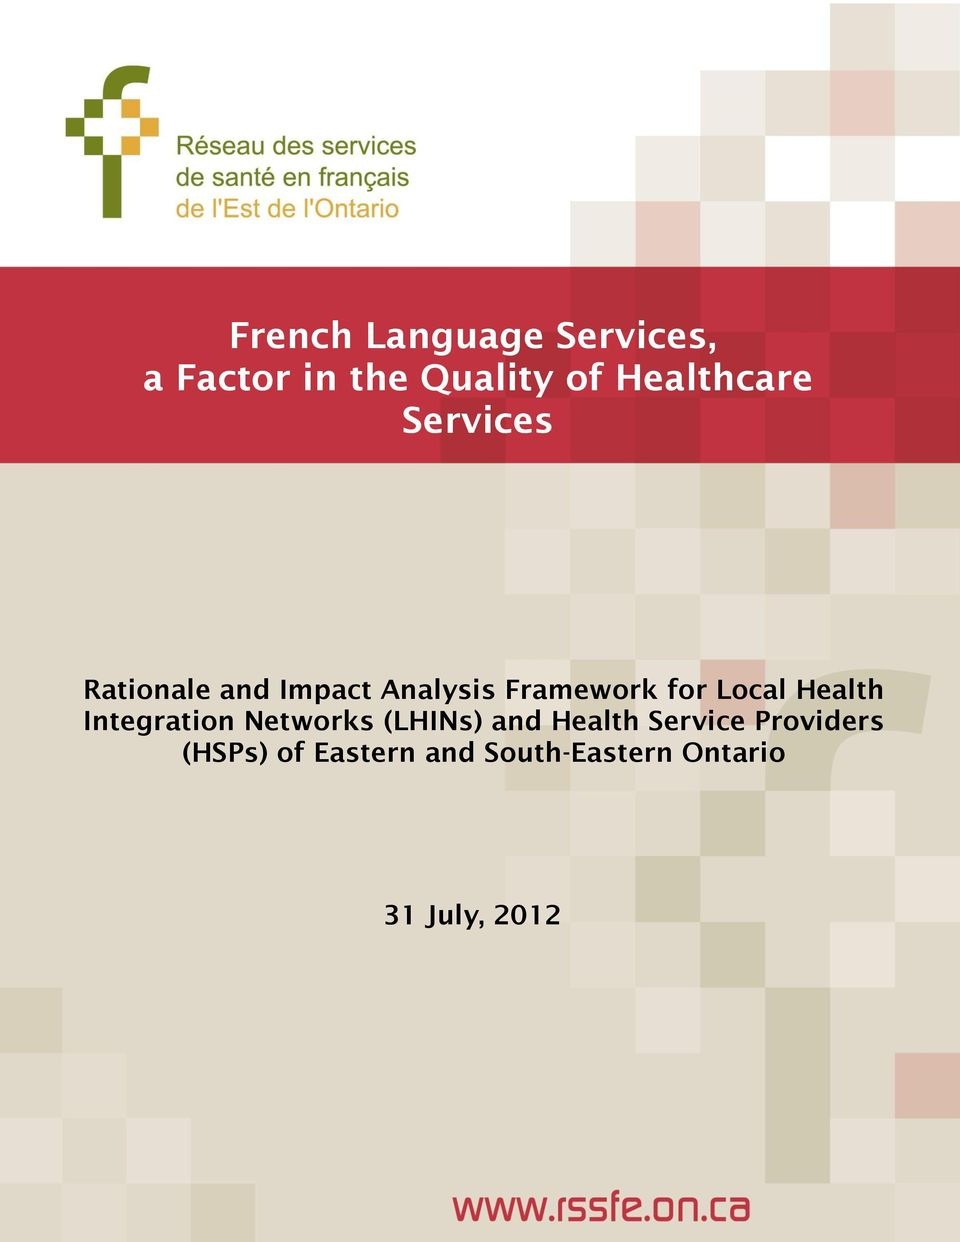 for Local Health Integration Networks (LHINs) and Health